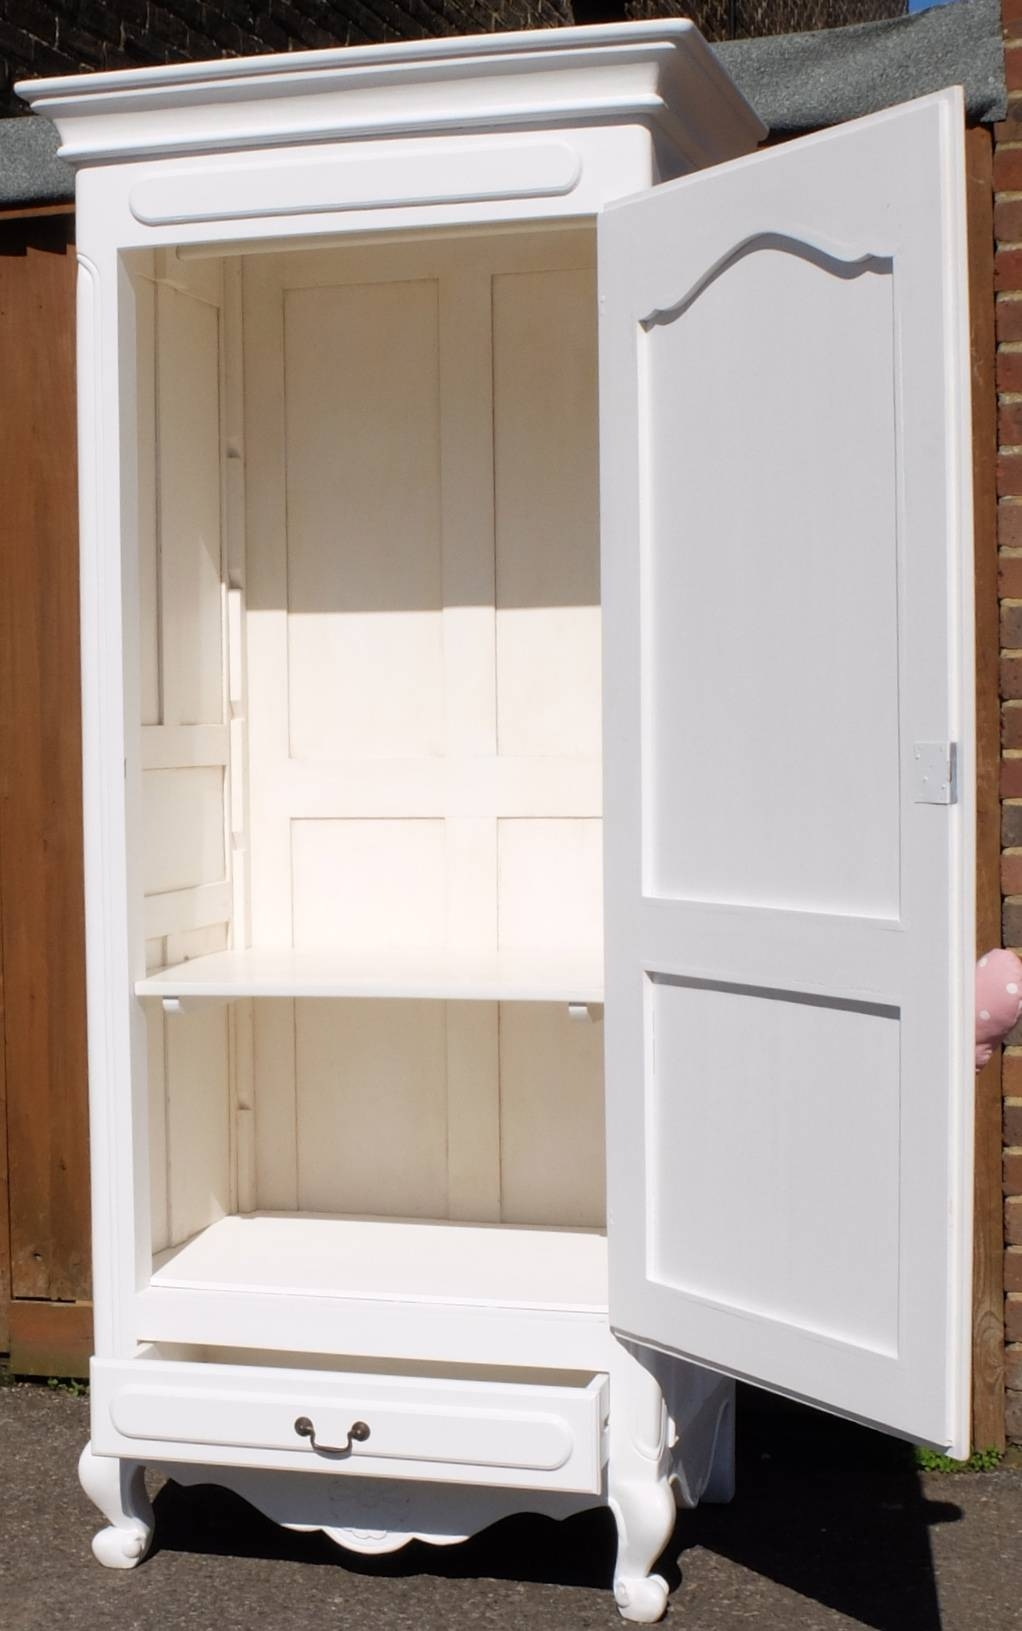 White French Style Single Door Wardrobe - Home Sweet Homehome intended for White Single Door Wardrobes (Image 15 of 15)